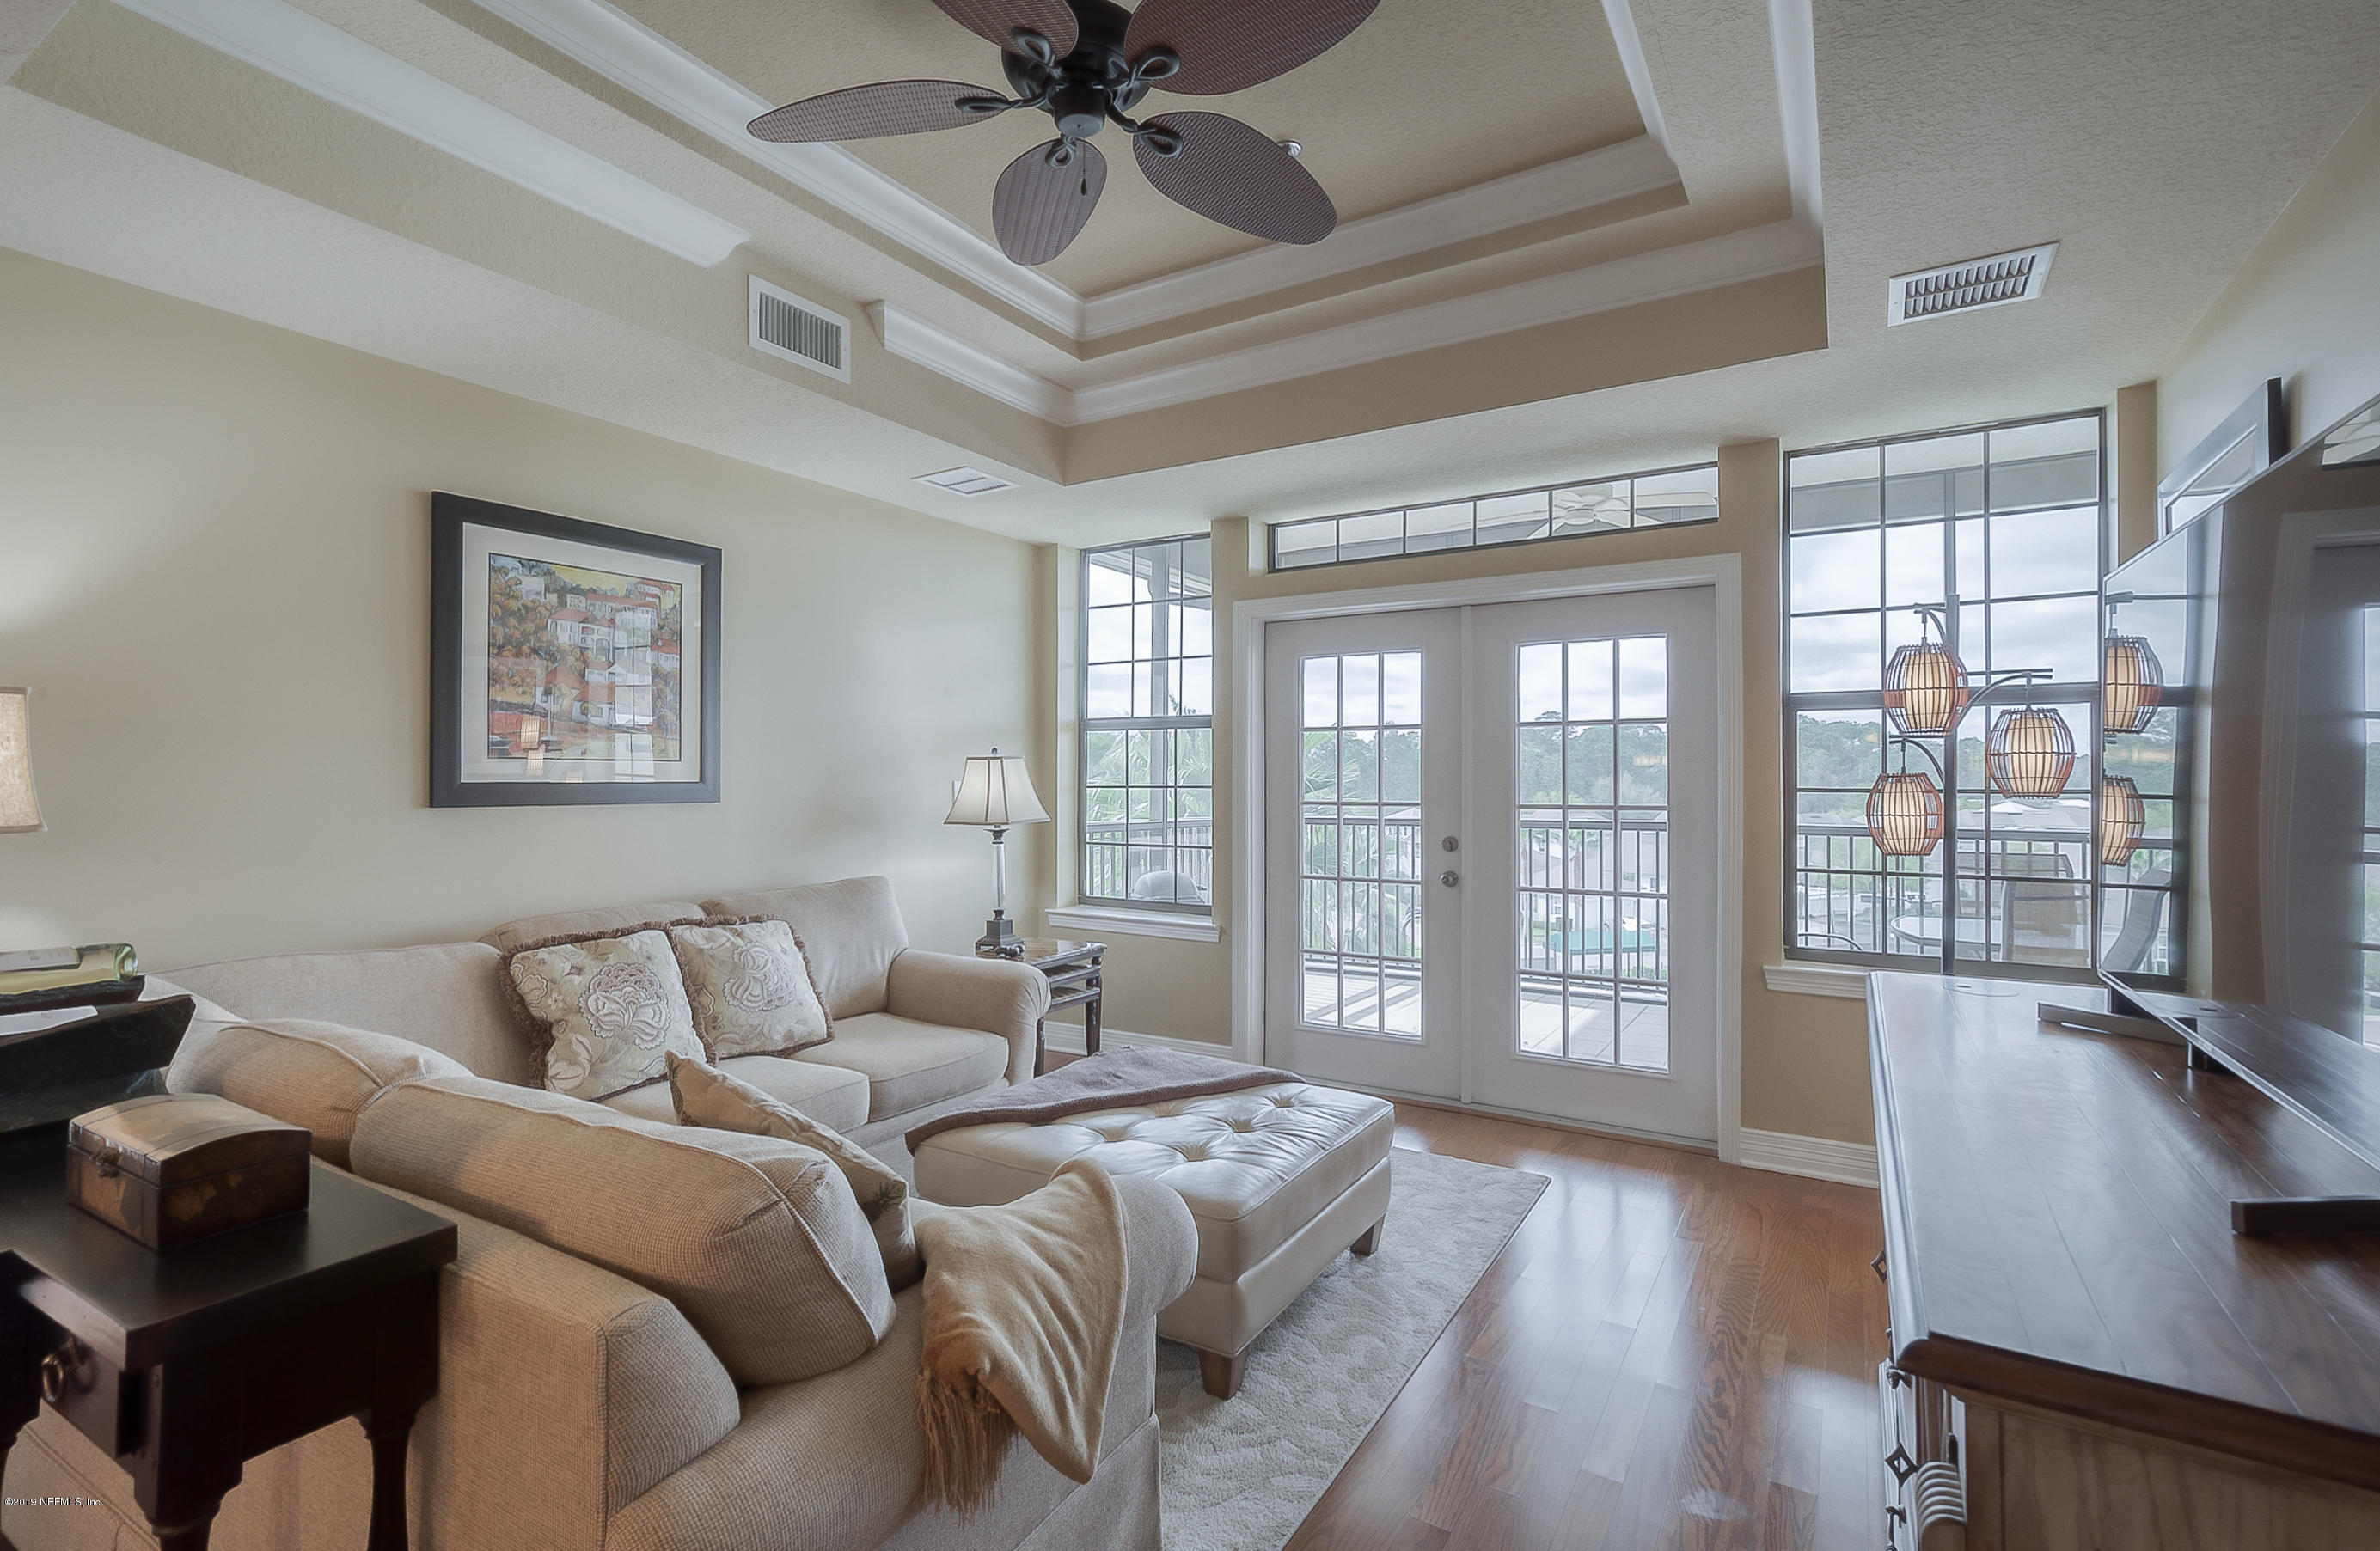 701 MARKET, ST AUGUSTINE, FLORIDA 32095, 2 Bedrooms Bedrooms, ,2 BathroomsBathrooms,Residential - condos/townhomes,For sale,MARKET,1002156